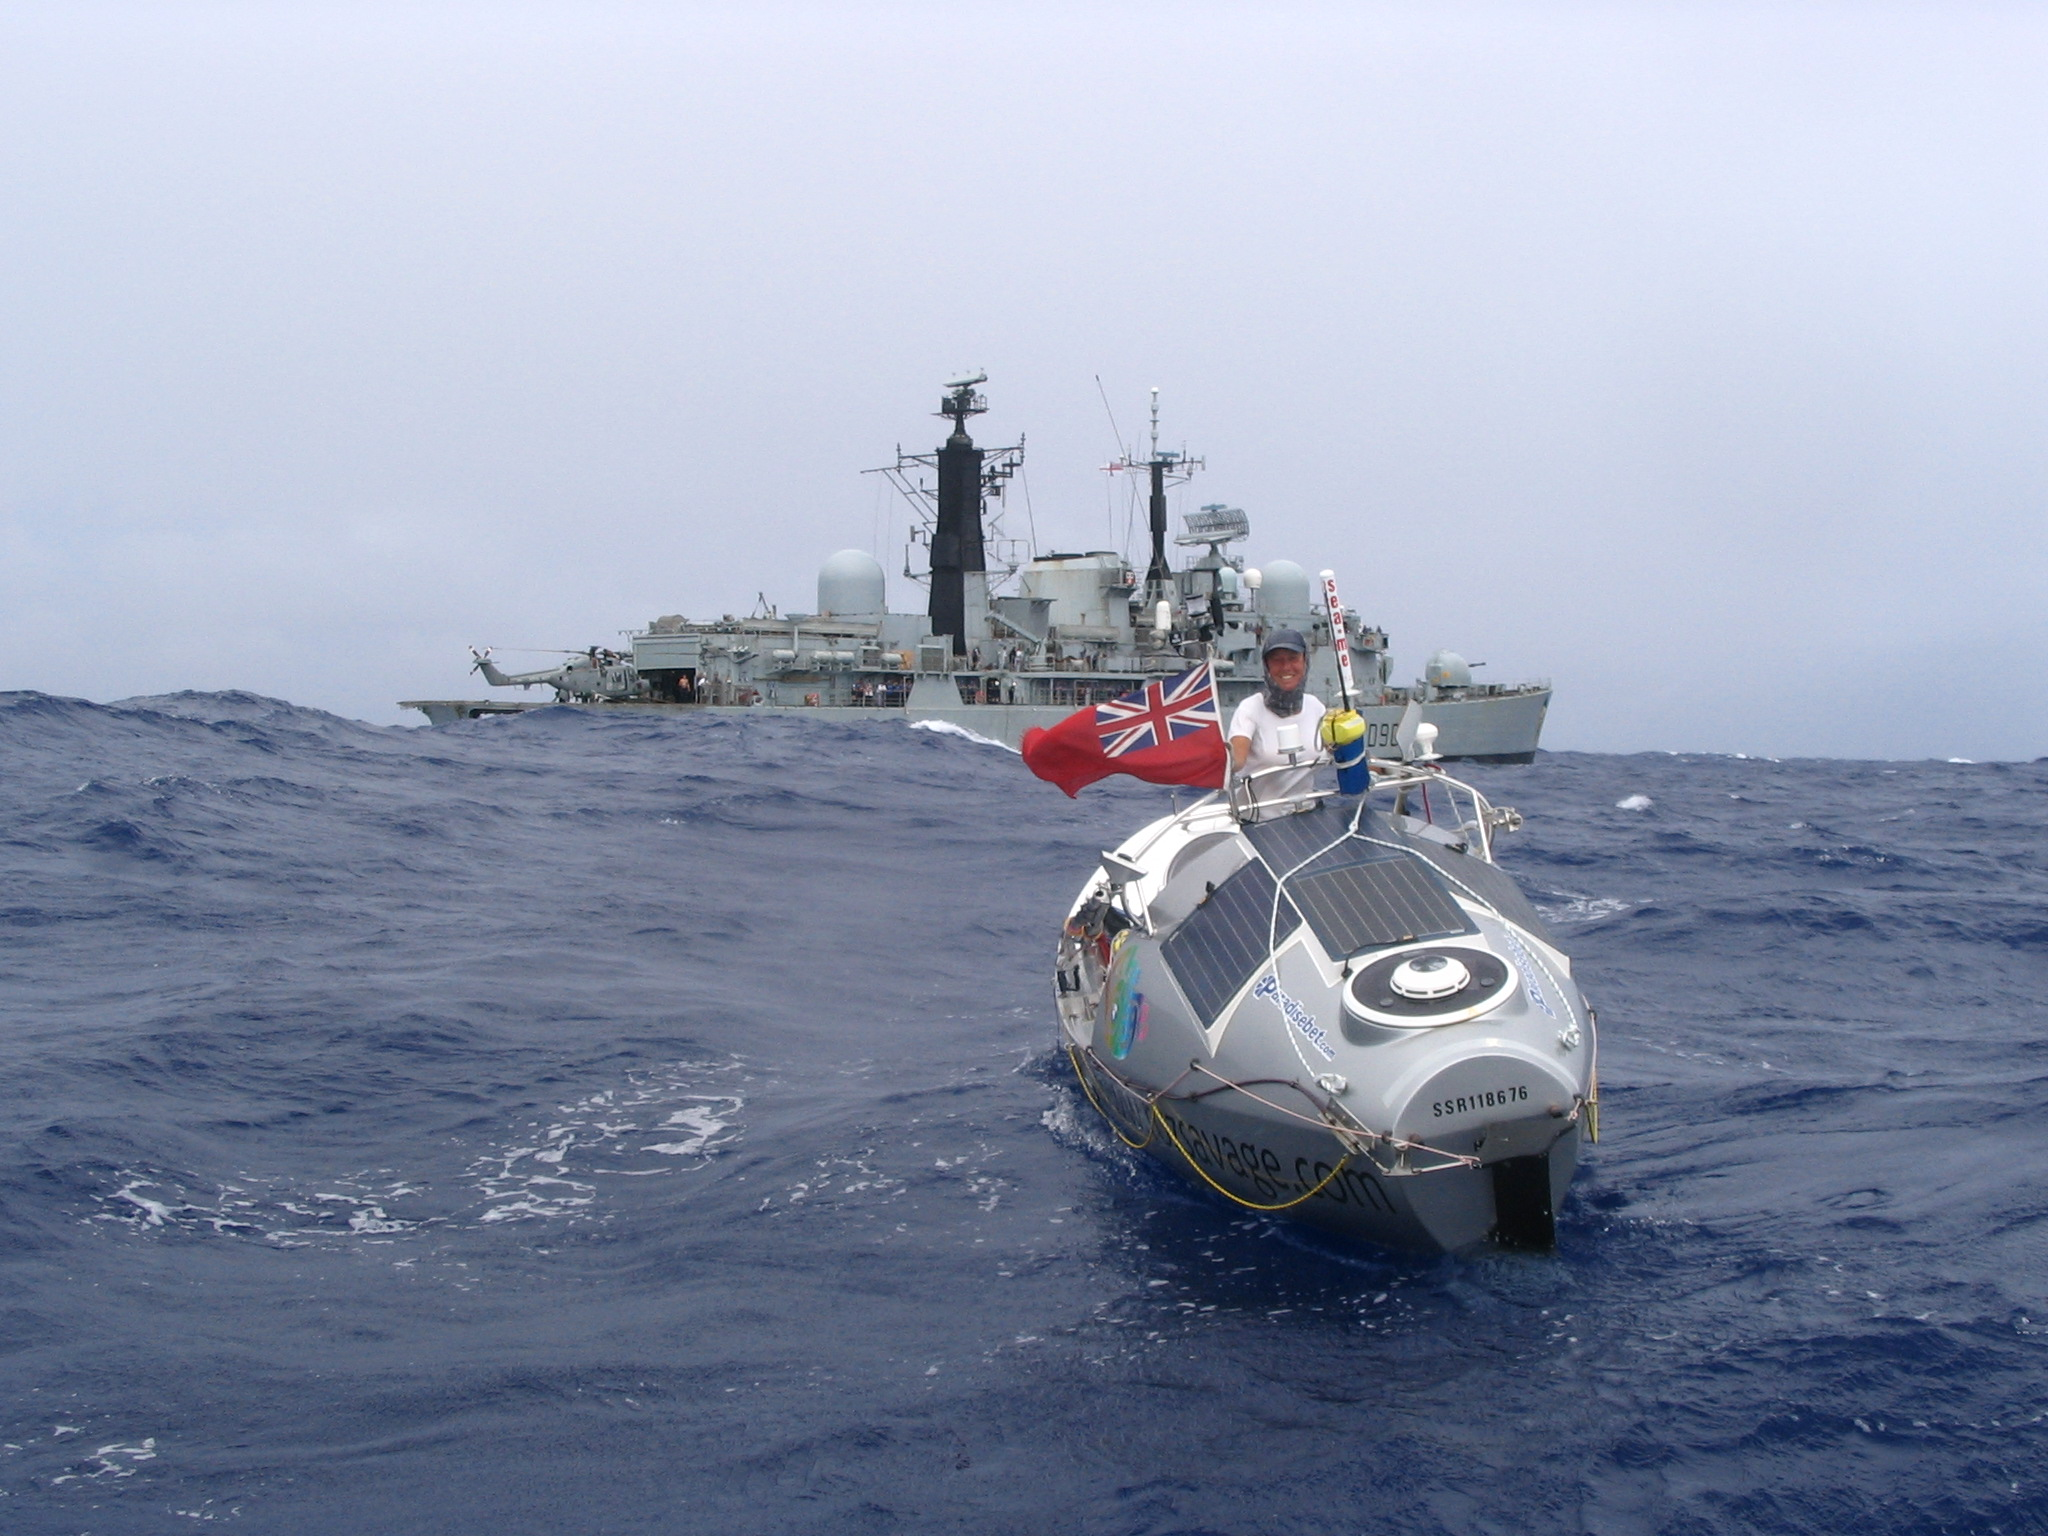 In 2005, Roz Savage rowed 3000 miles across the Atlantic Ocean - solo. Roz and HMS Southampton.   (Photo credit: the Royal Navy)